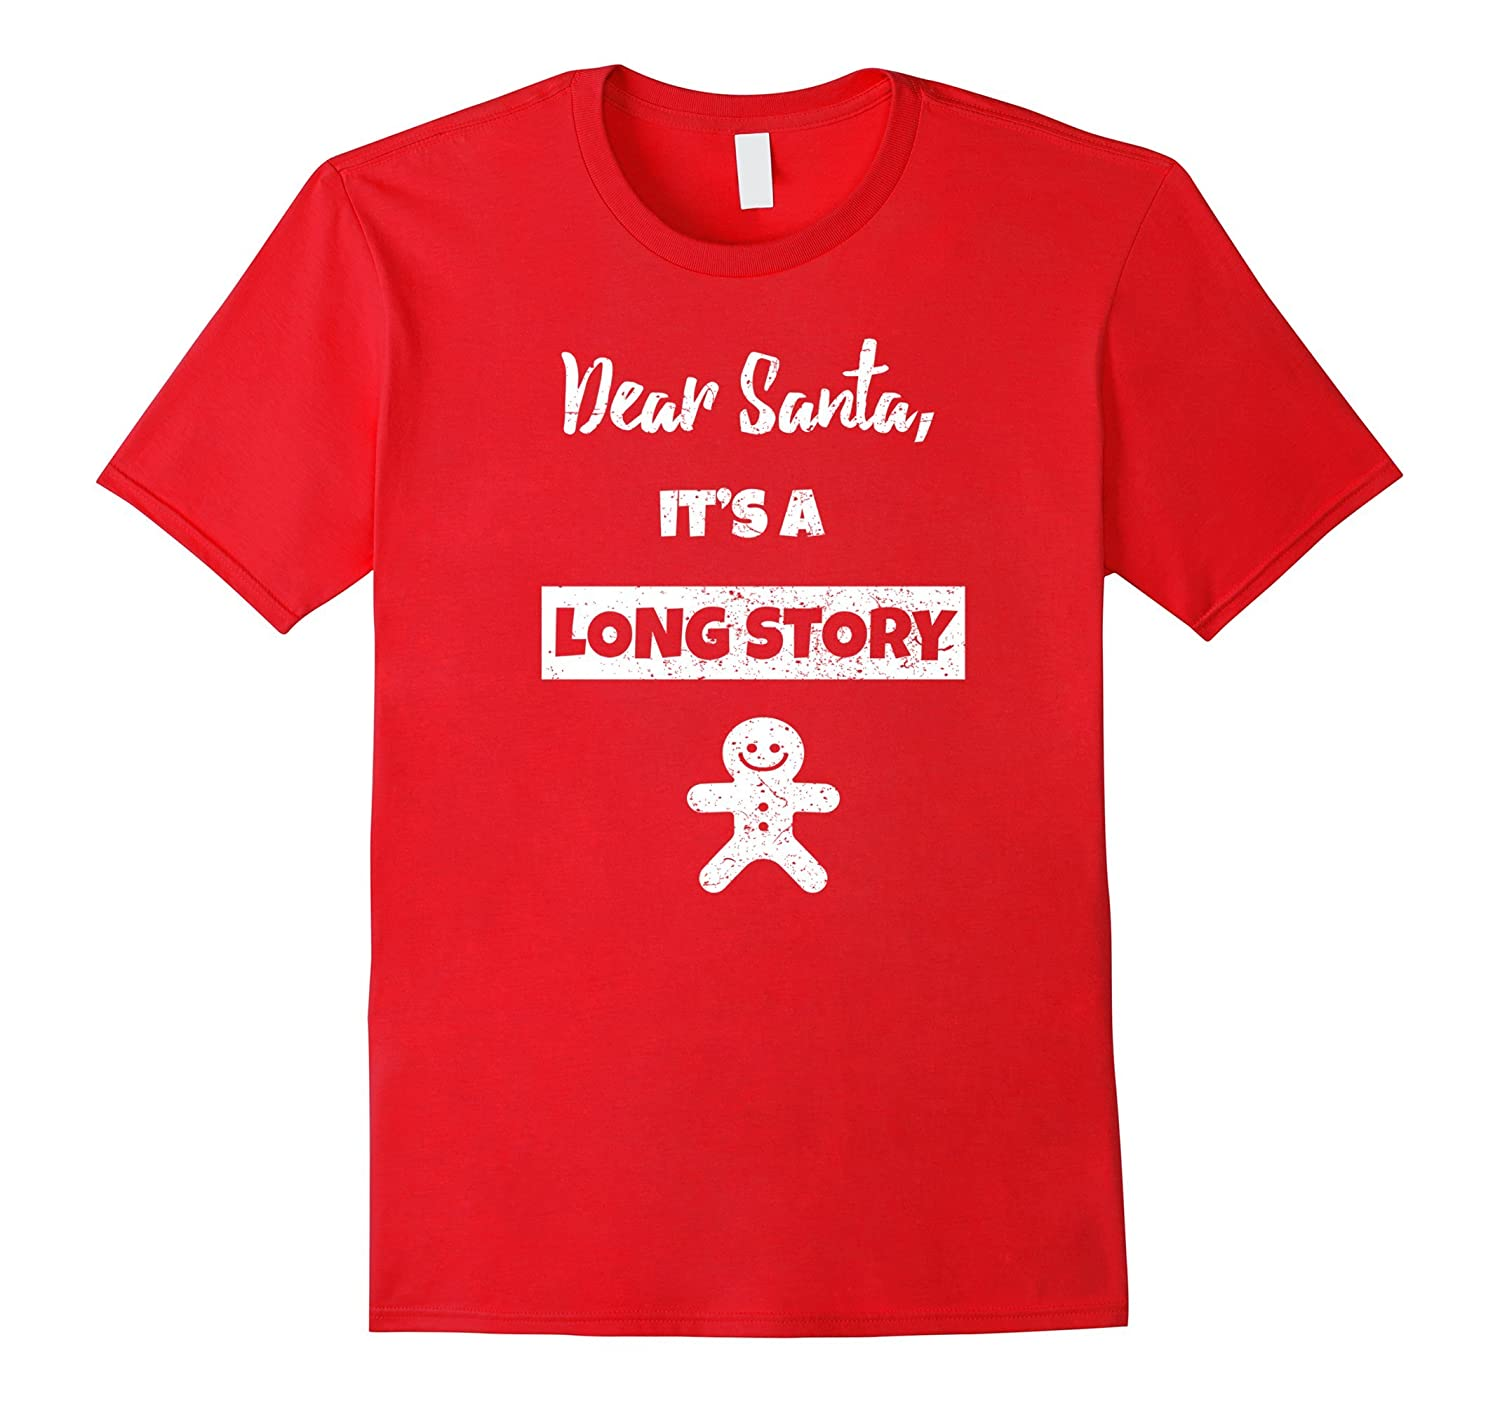 Dear Santa It's A Long Story Christmas T-Shirt Funny-FL